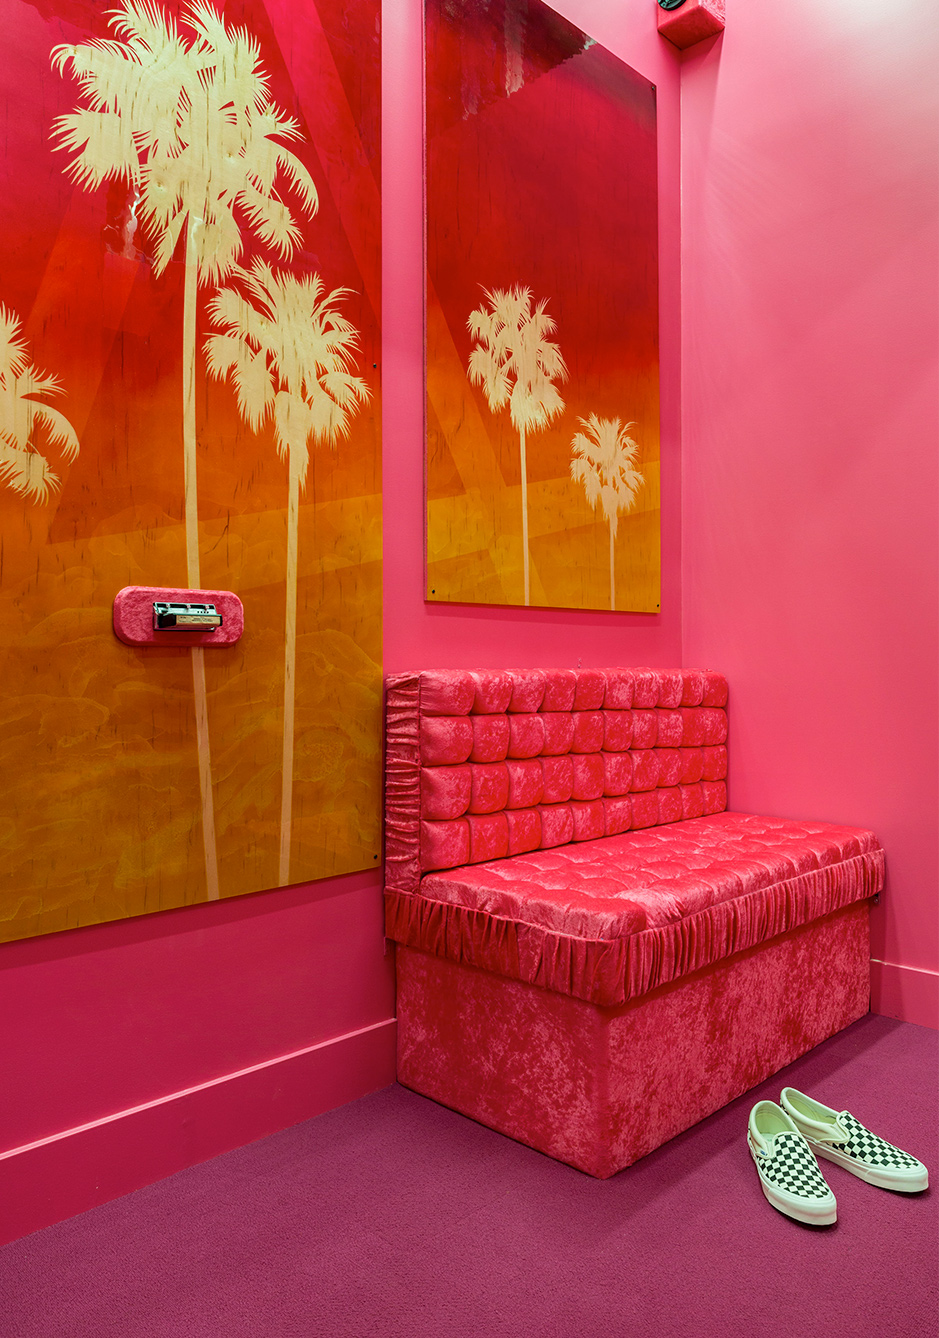 detailing d8cf8 baf39 The fitting room pays tribute to the Los Angeles Car culture